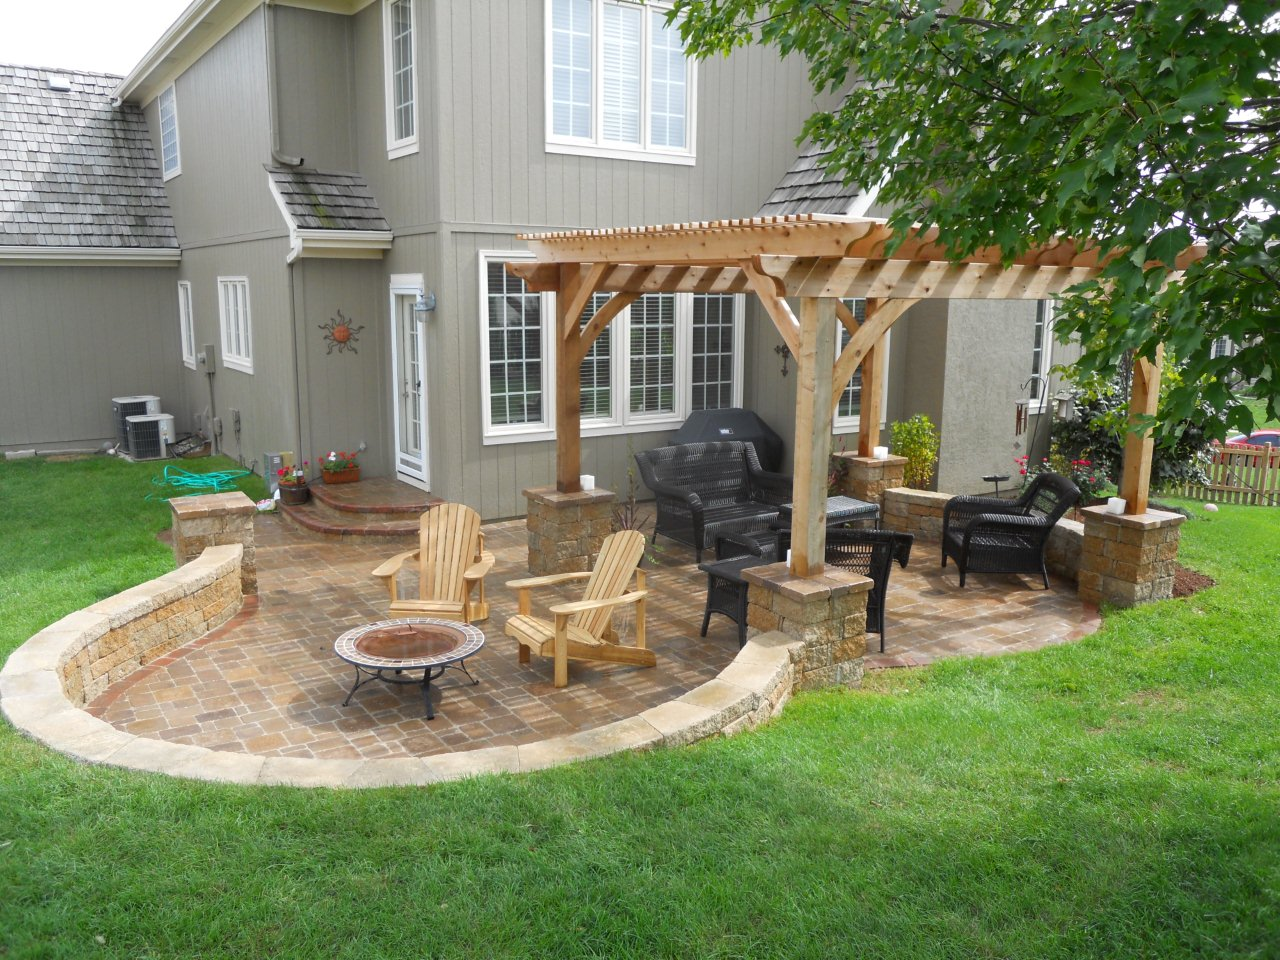 Flagstone Patio Pavers Design Ideas For Backyard Patio ... on Small Backyard Brick Patio Ideas  id=28778